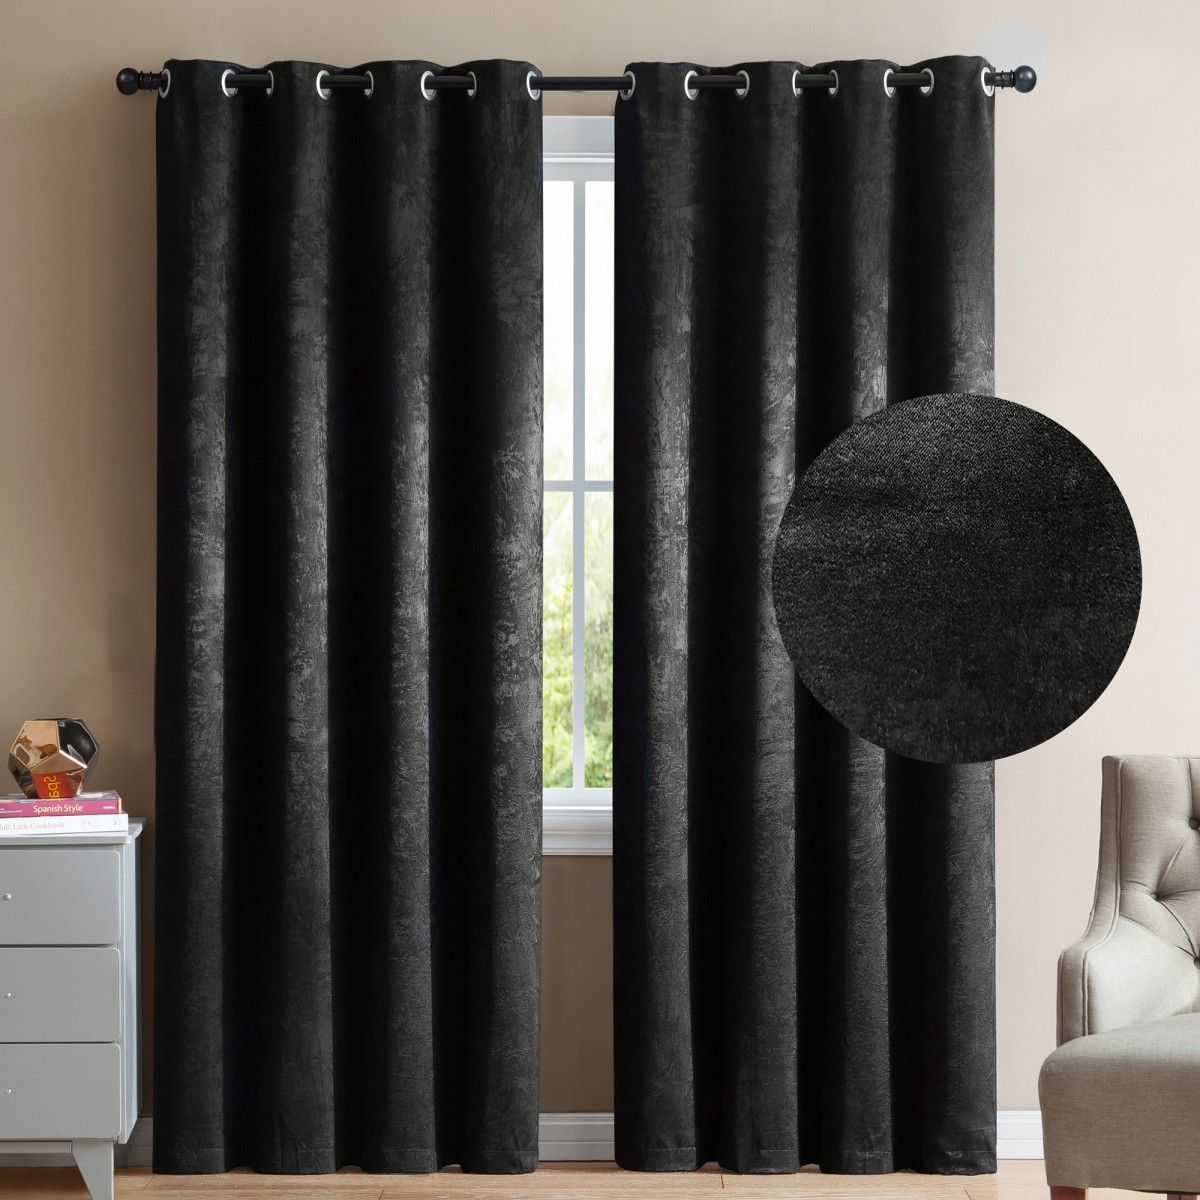 Vcny Marco 2 Blackout Window Curtains 96 Black Velour Velvet Grommet Panel Pair Drapes Window Treatments Home Ki Window Curtains Grommet Panels Curtains